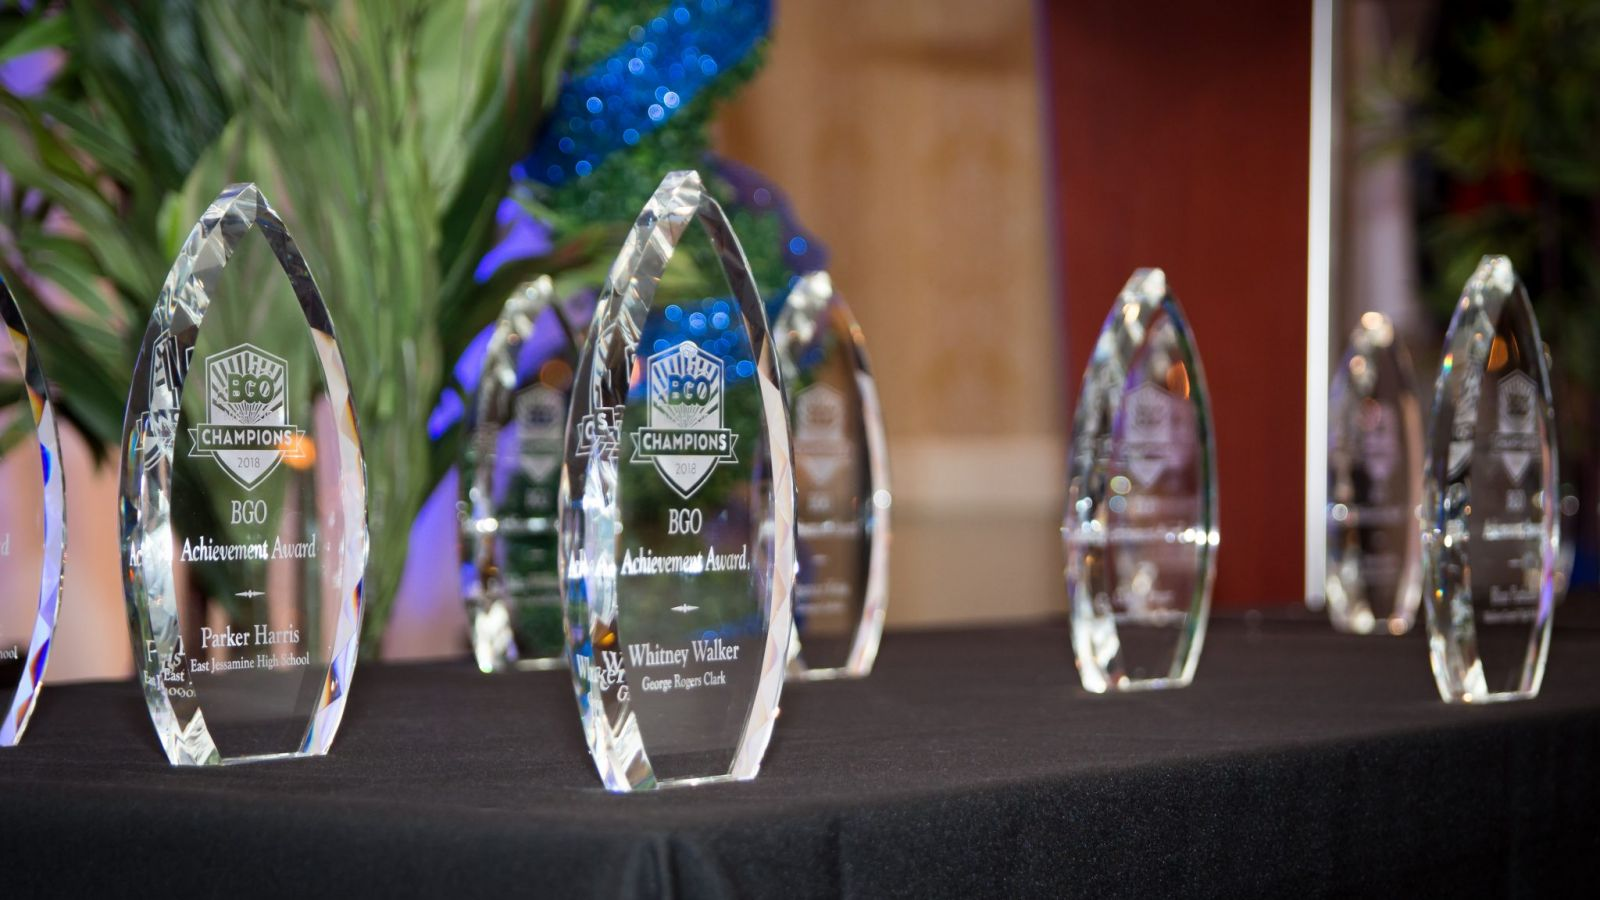 a group of glass awards on a table